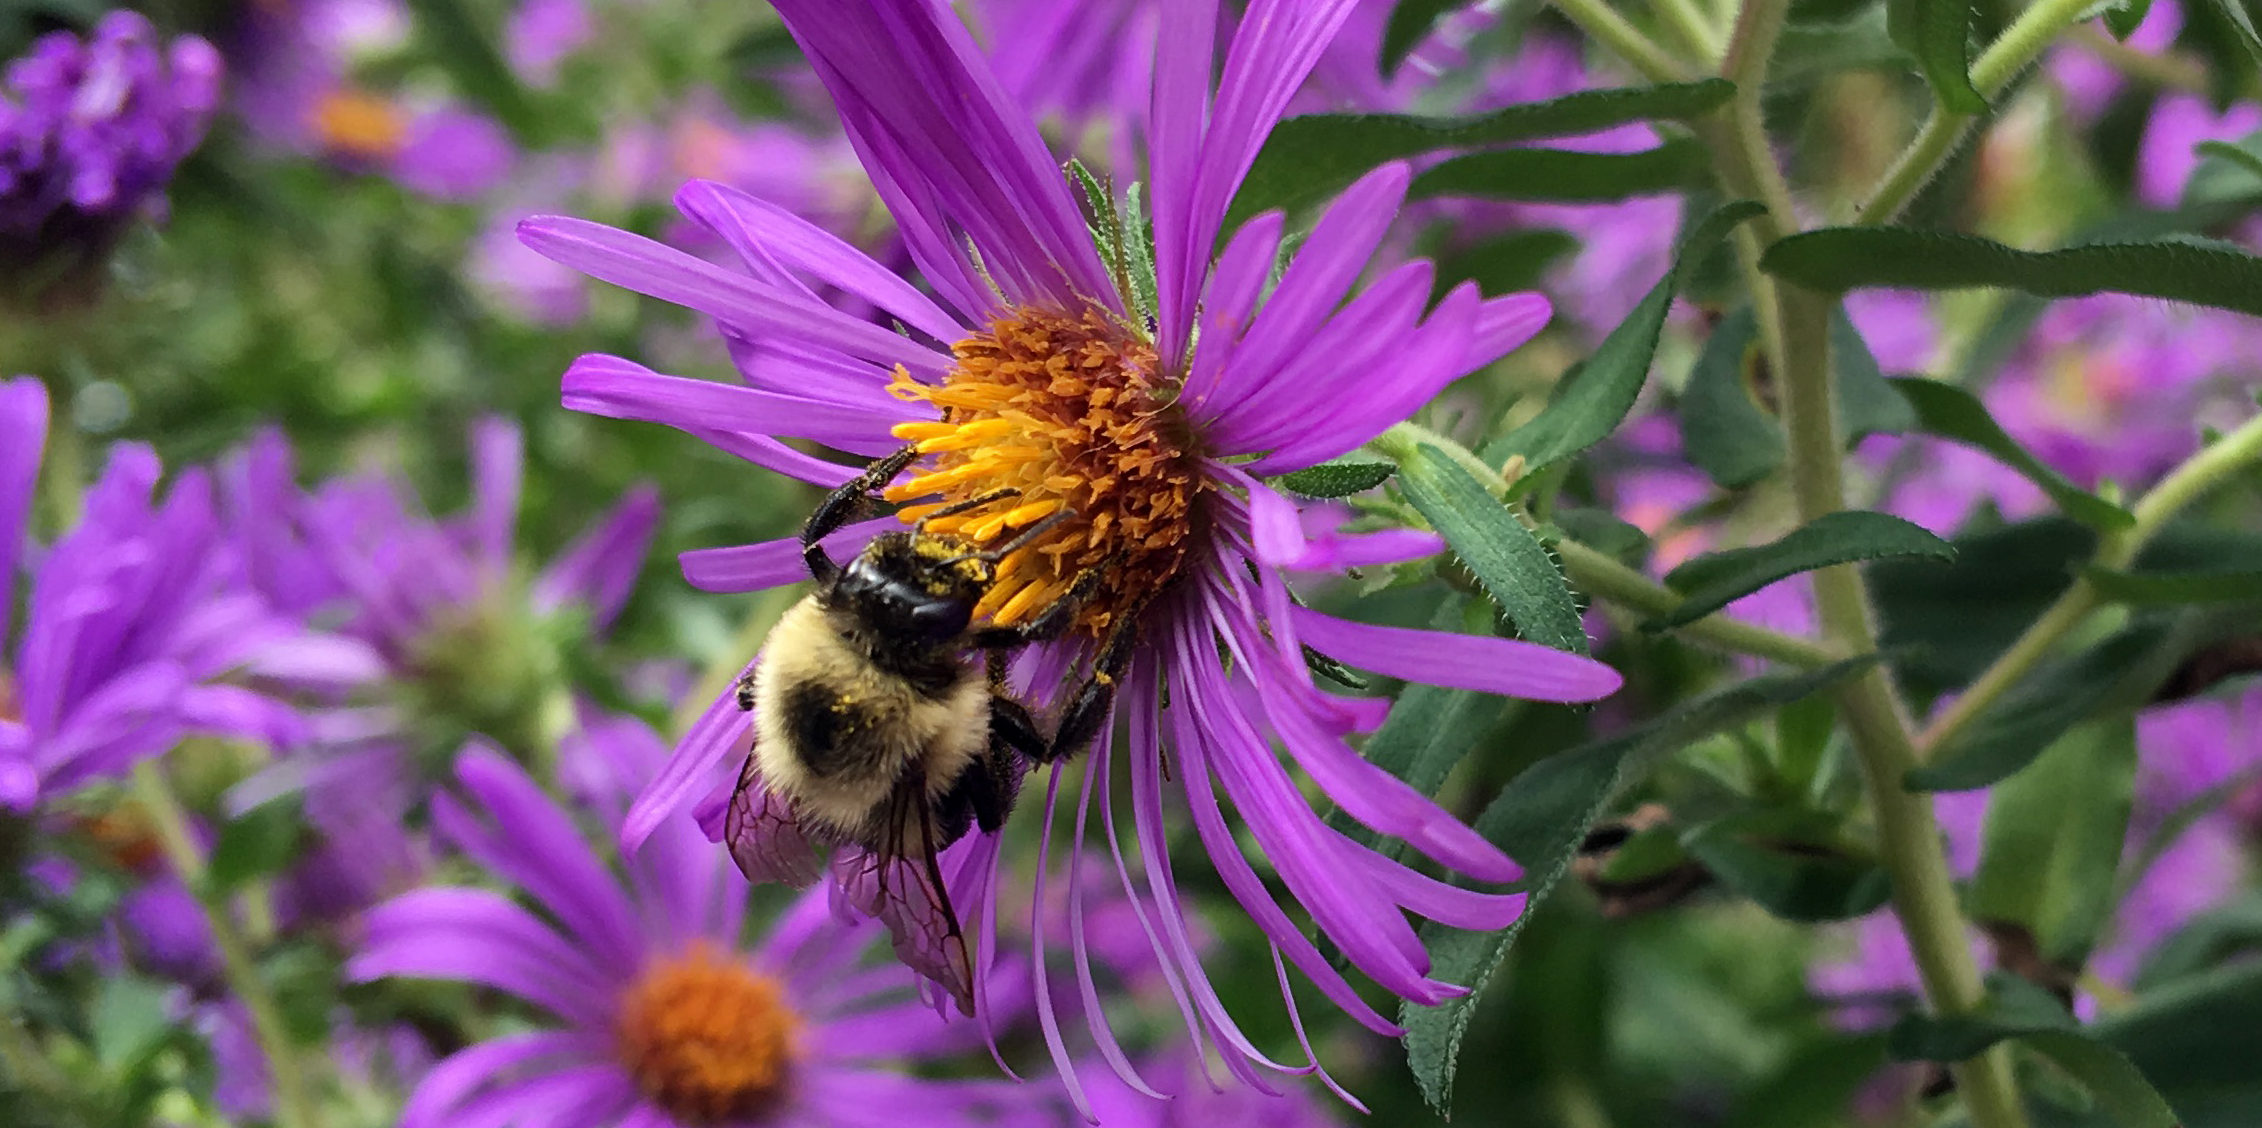 A Fatyellow Bee Collects Pollen From A Purple New England Aster